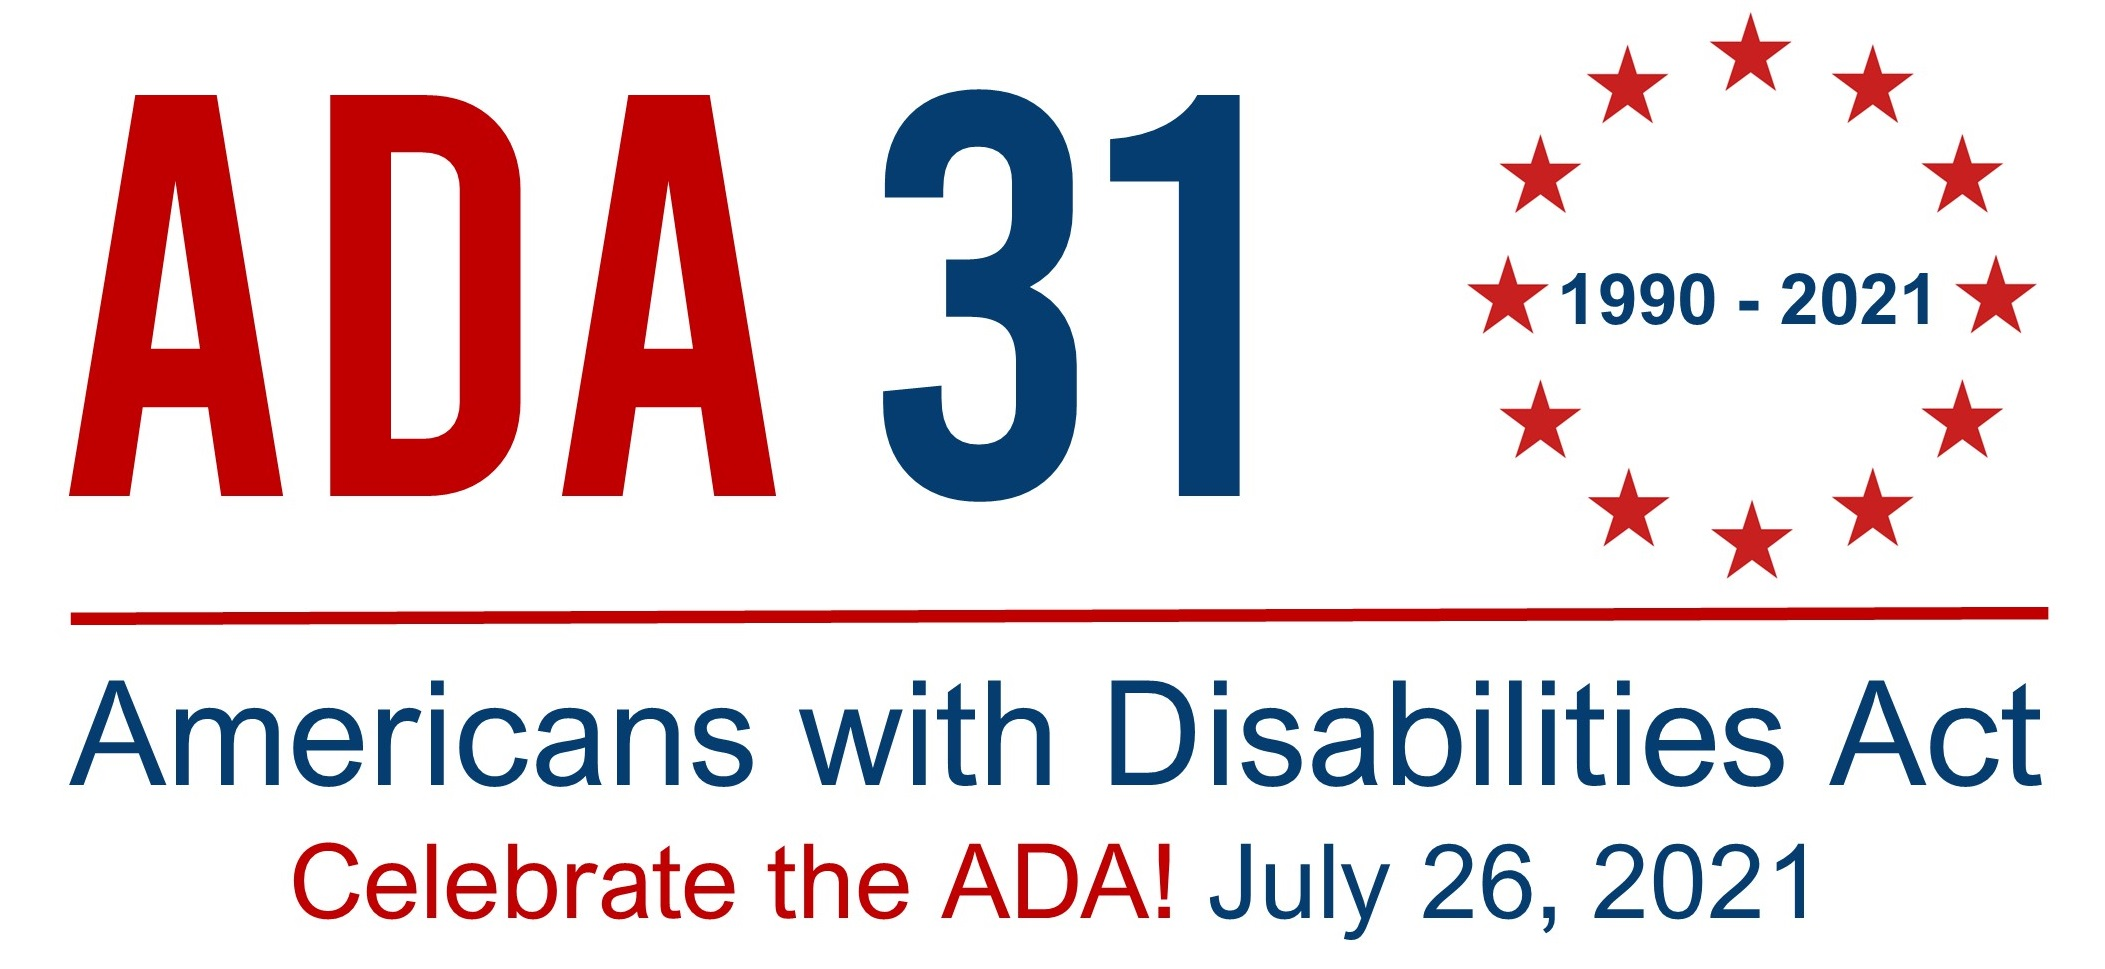 ADA31: 1990 - 2021. Americans with Disabilities Act. Celebrate the ADA! July 26, 2021